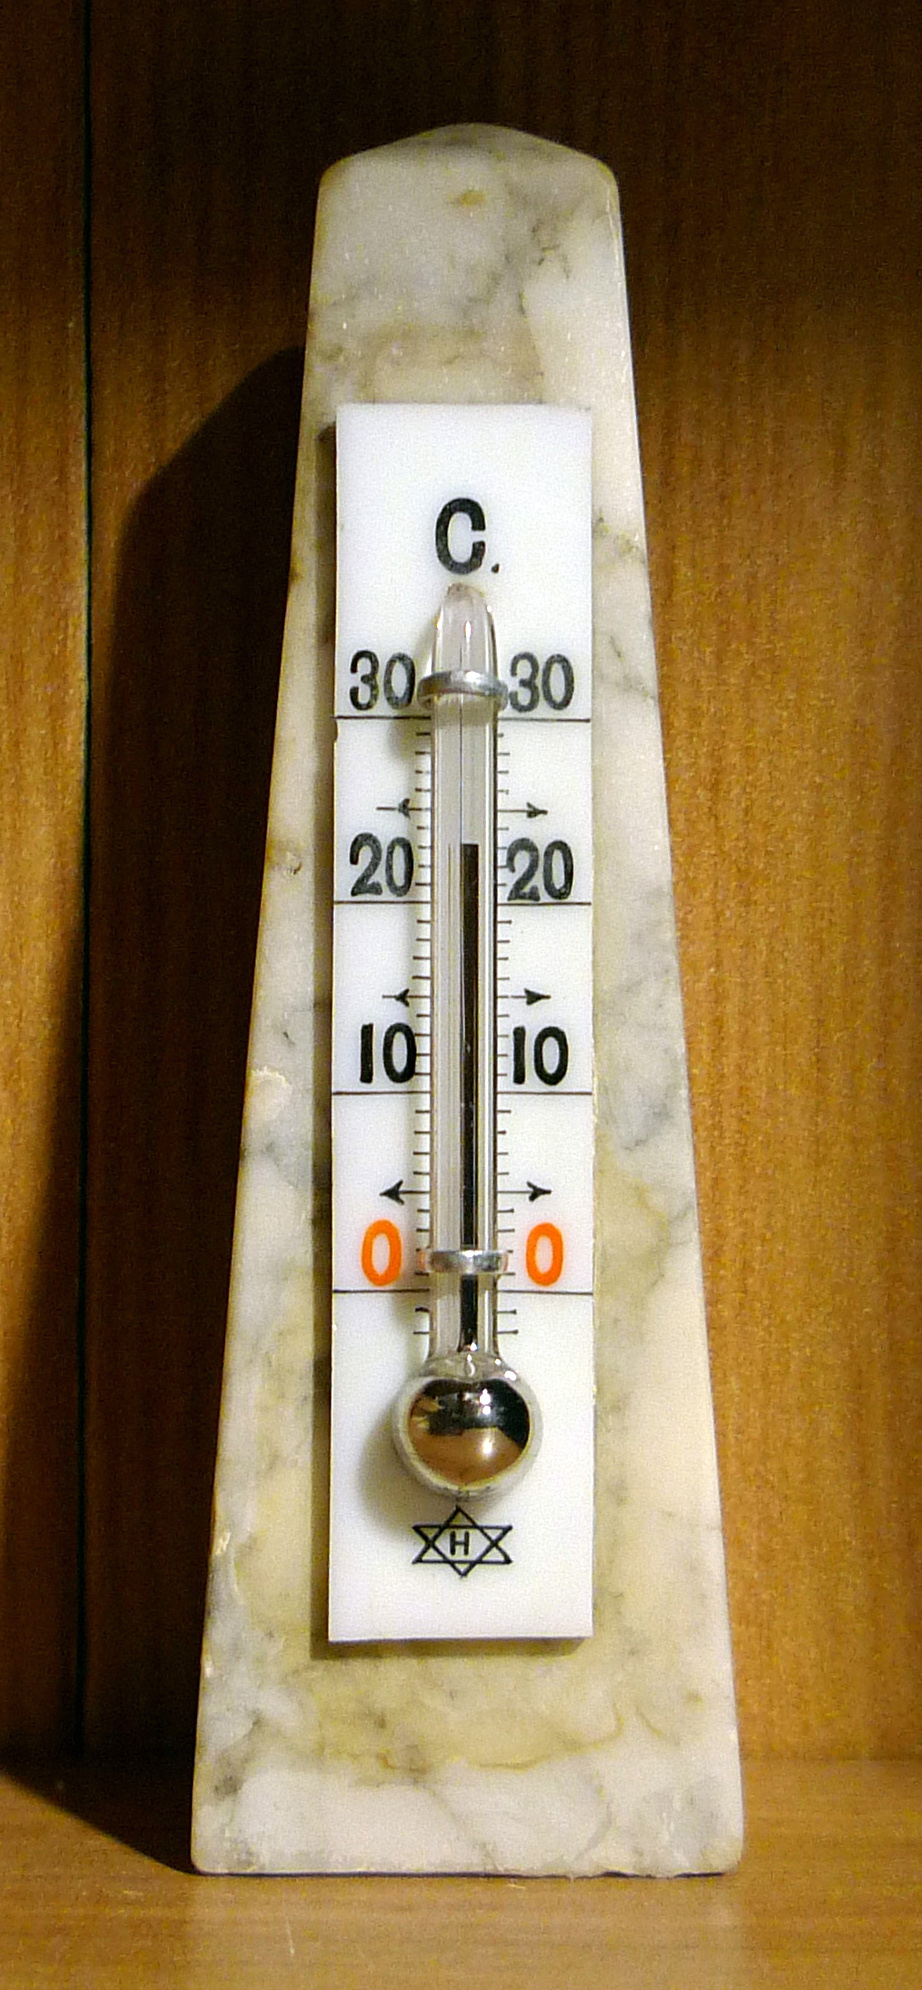 Old Room Temperature Controls